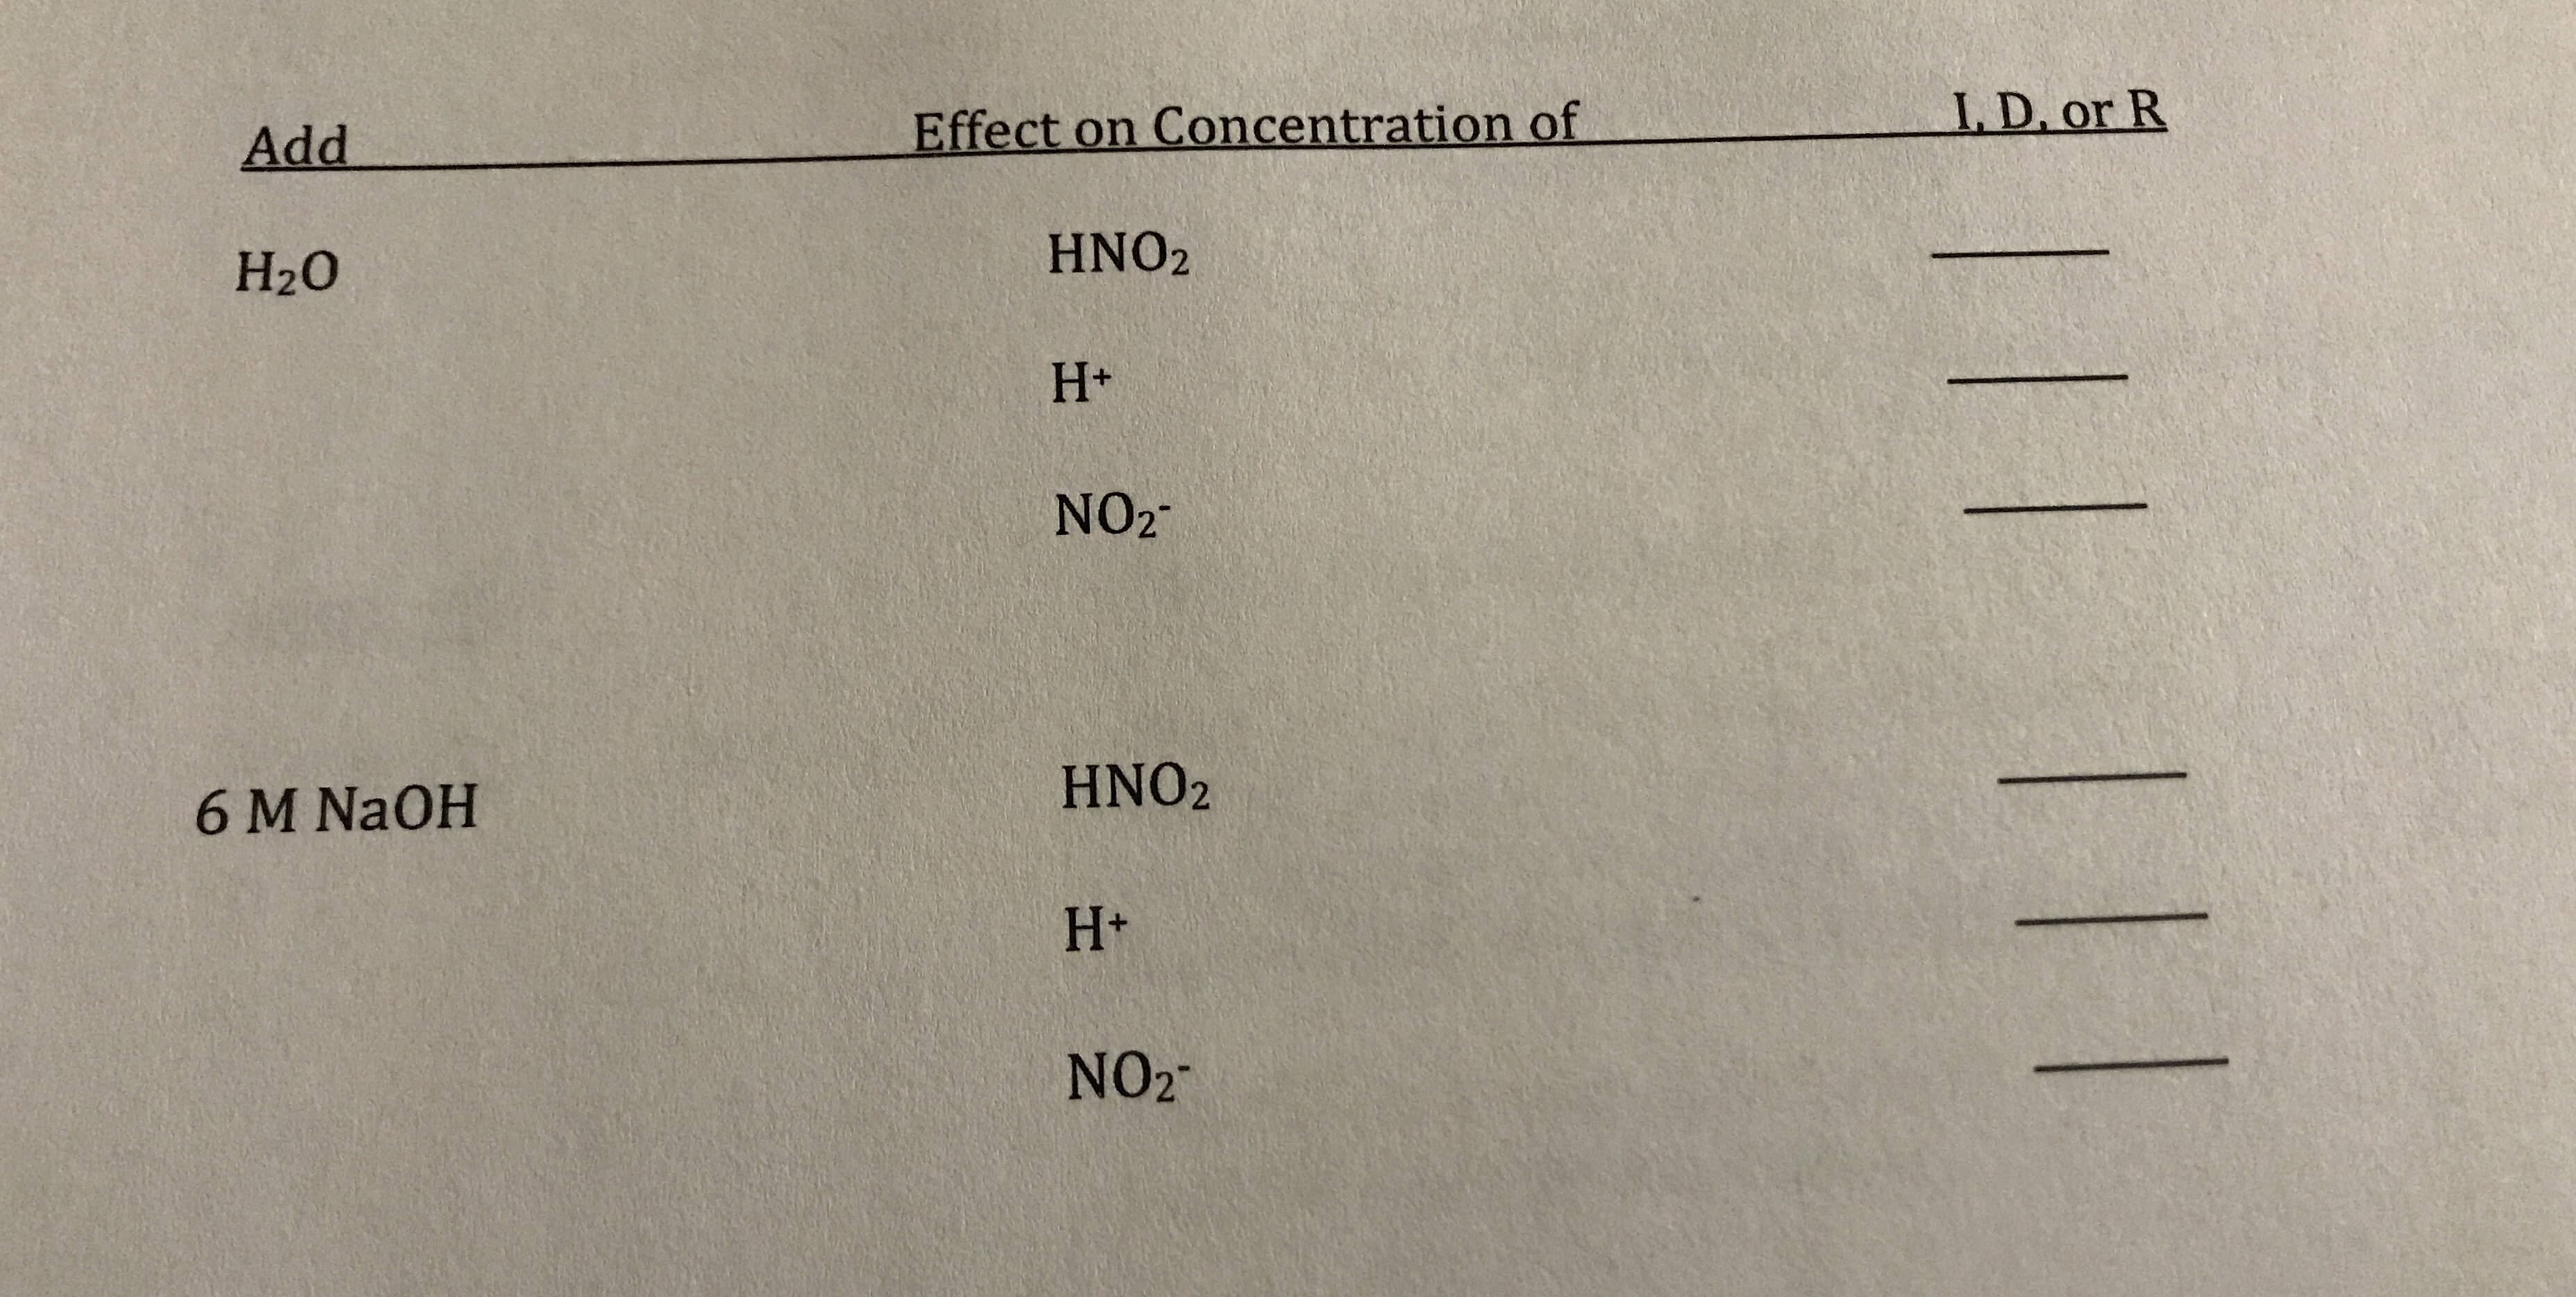 LD. or R Effect on Concentration of Add HNO2 H20 H+ NO2 HNO2 6 M NAOH H+ NO2